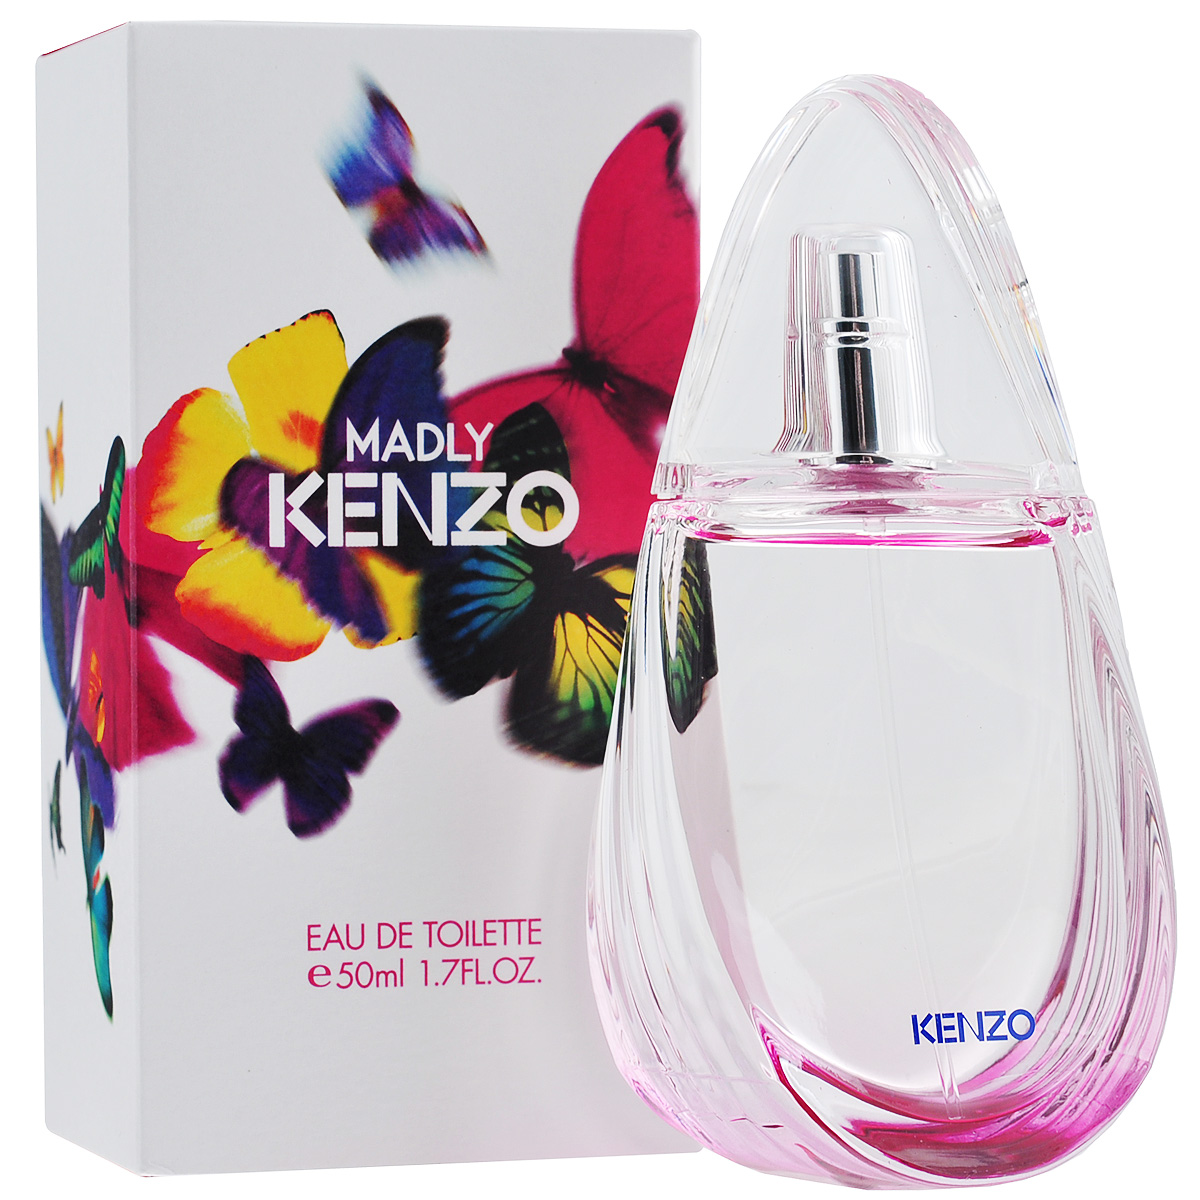 Kenzo Туалетная вода Madly, женская, 50 мл kenzo туалетная вода kenzo madly 15 ml